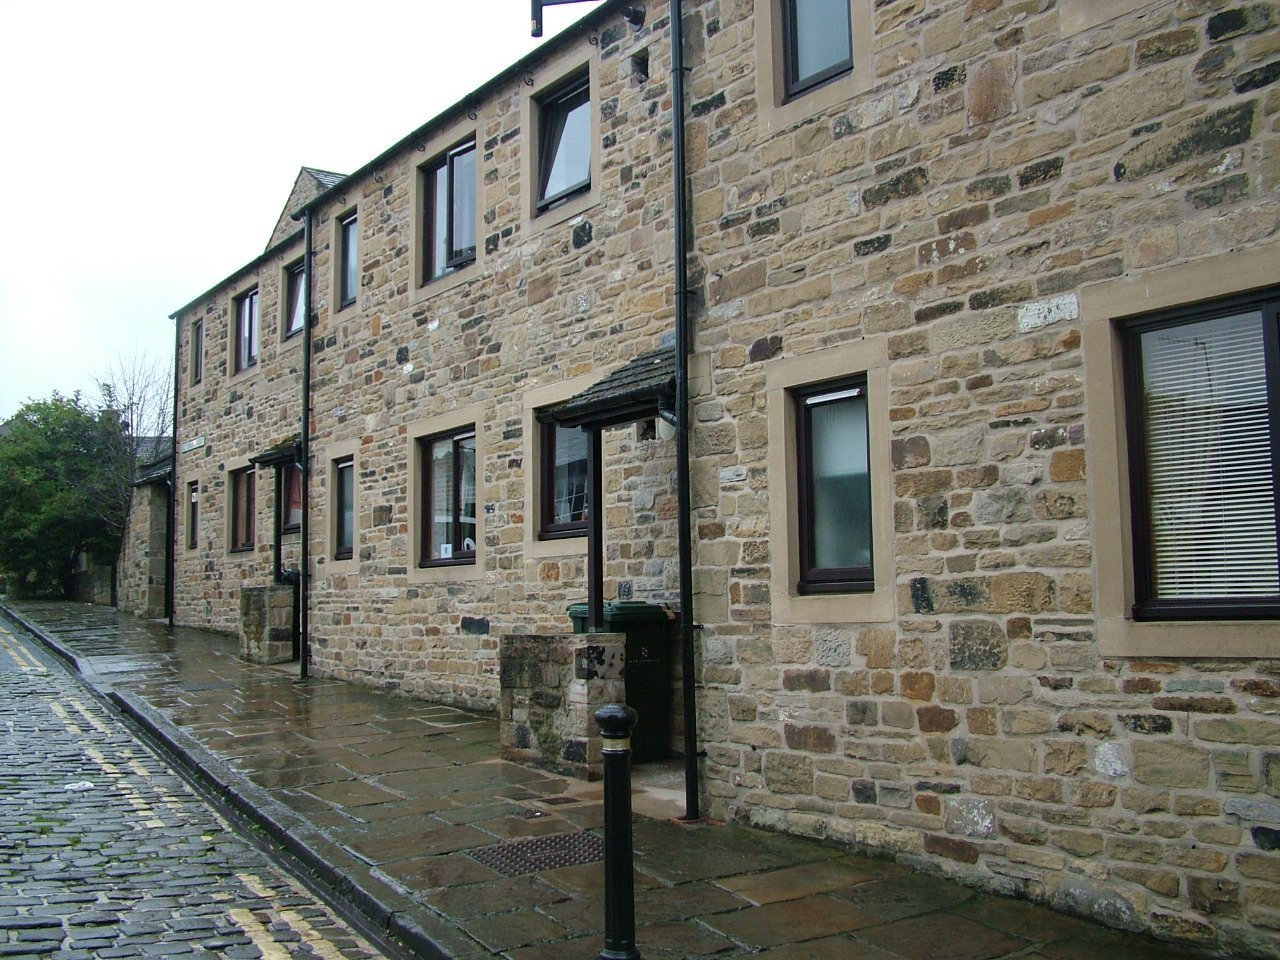 Maintainance work to stone for Southdale Homes at Skipton